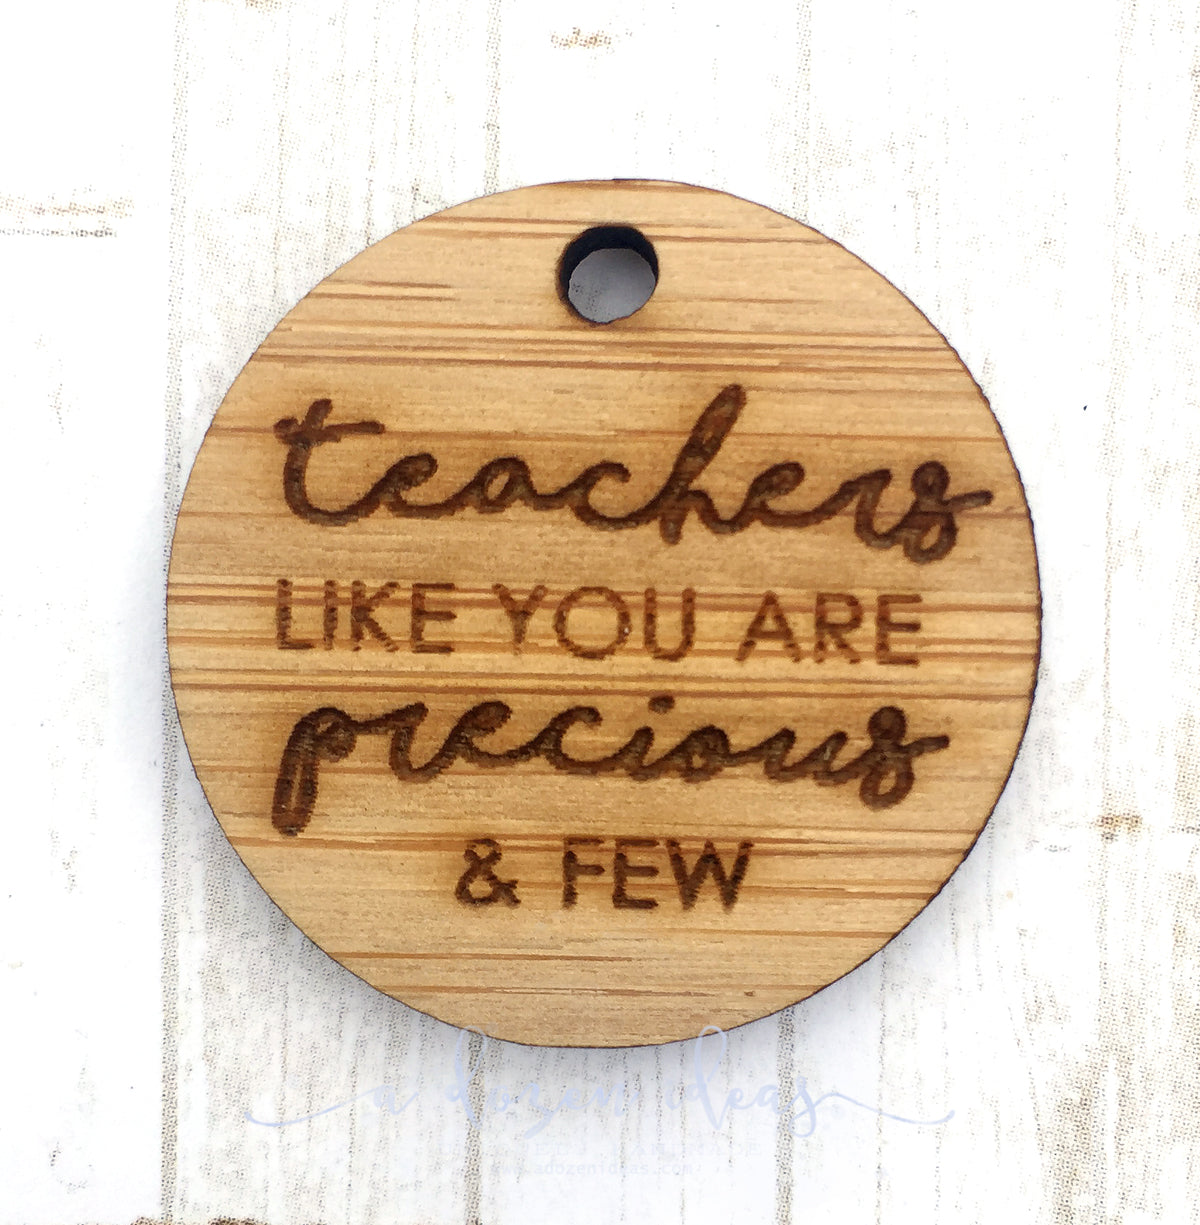 Add-on - Teachers like you are precious